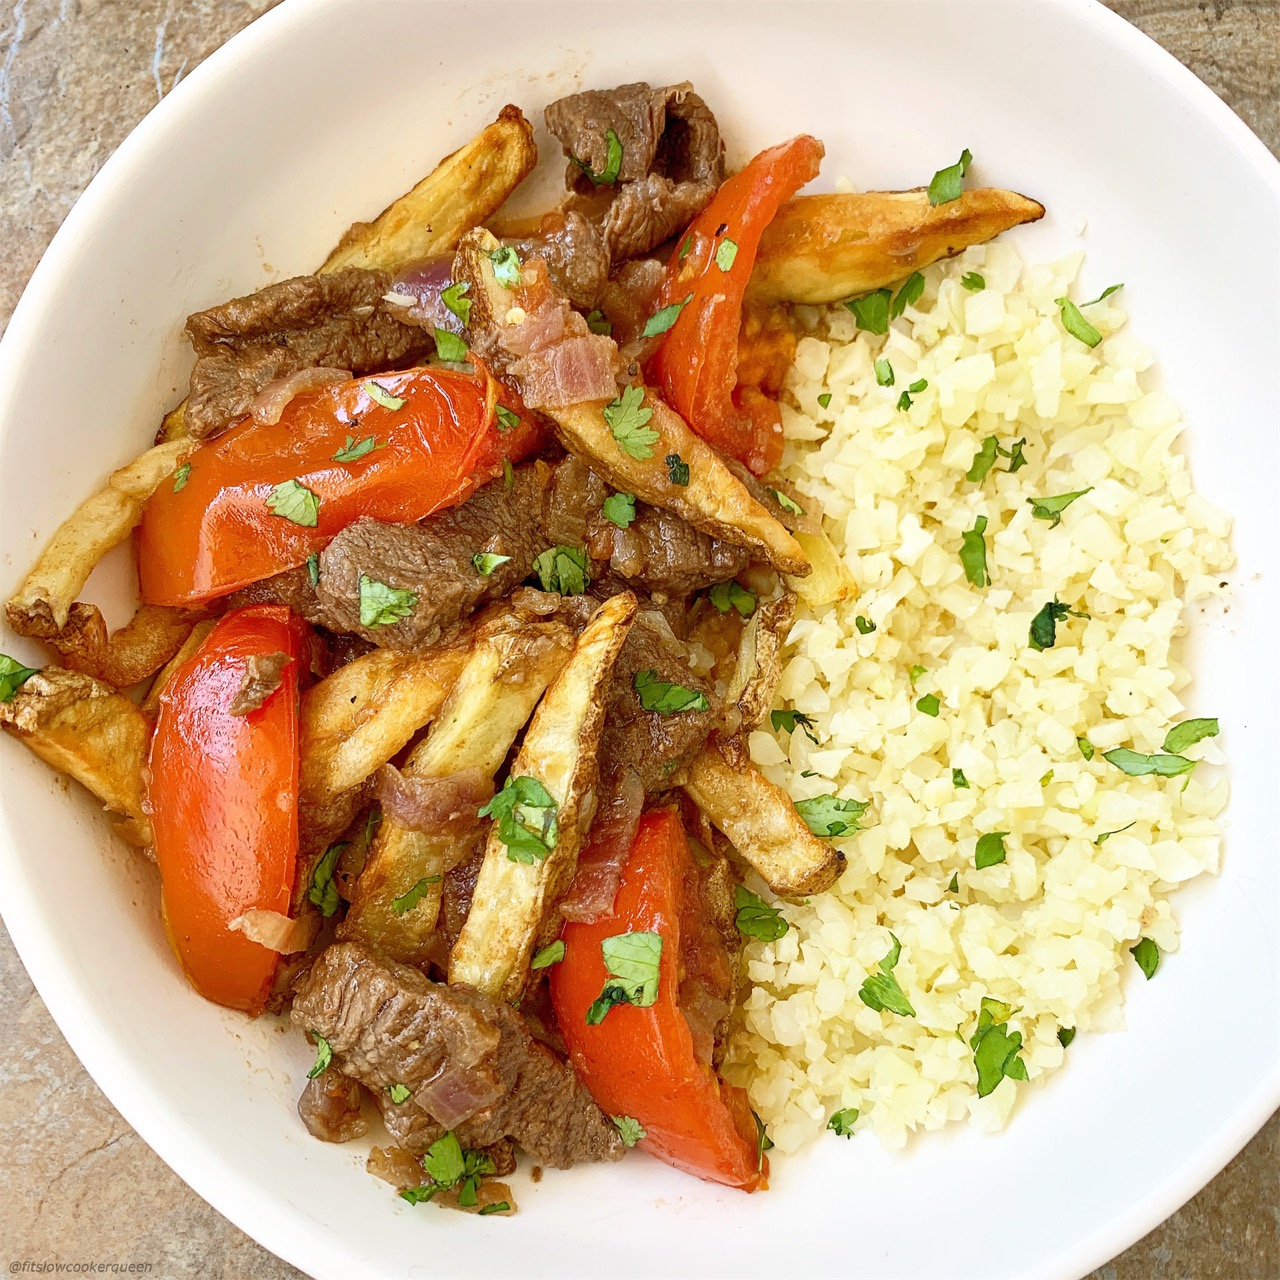 Lomo saltado is Peruvian dish that combines beef stir-fry, french fries and rice. Make this paleo/whole30 version in your slow cooker or Instant Pot.